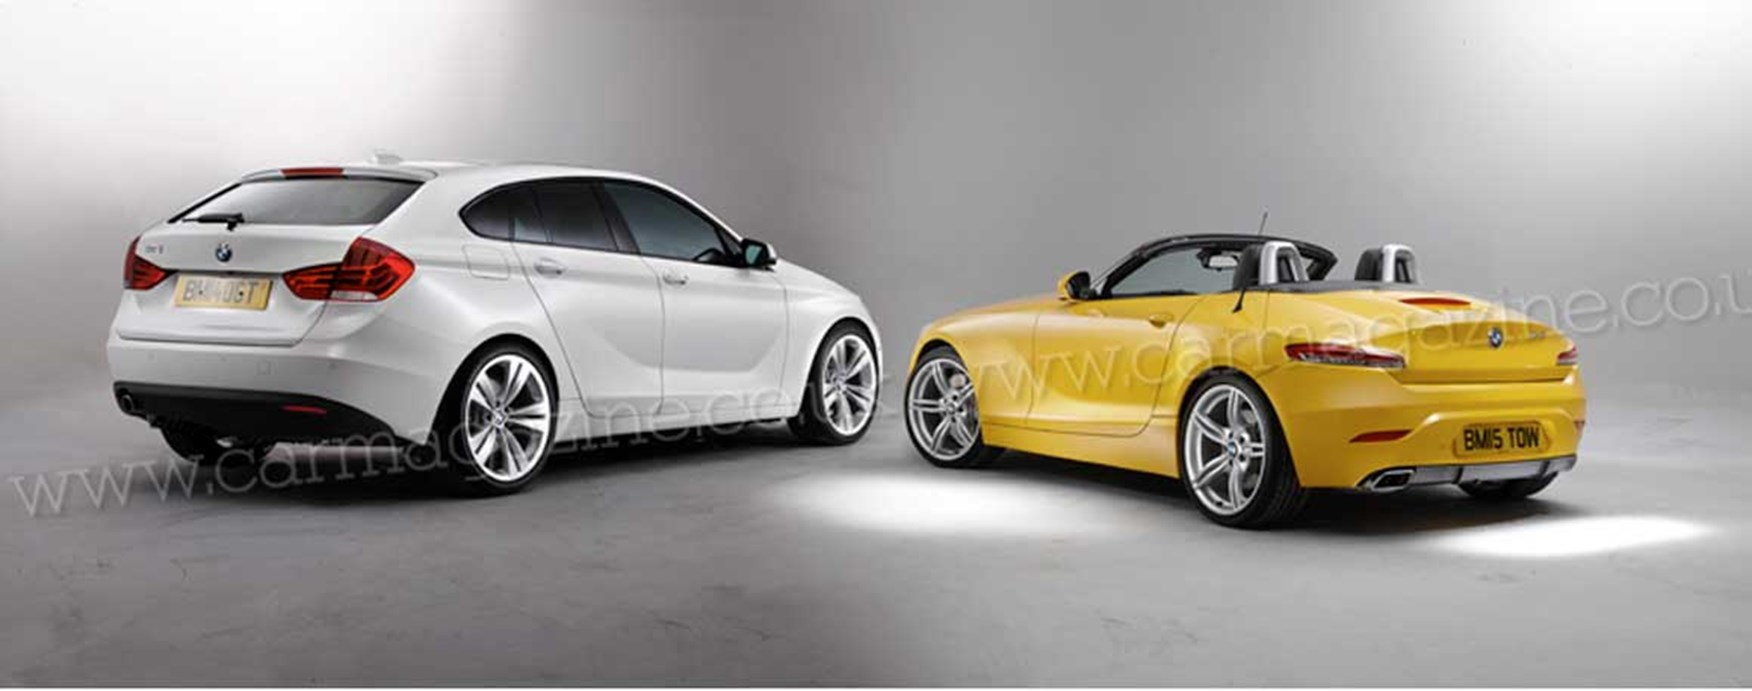 Bmw Z2 2016 And 1 Series Gran Turismo 2014 Car Magazine